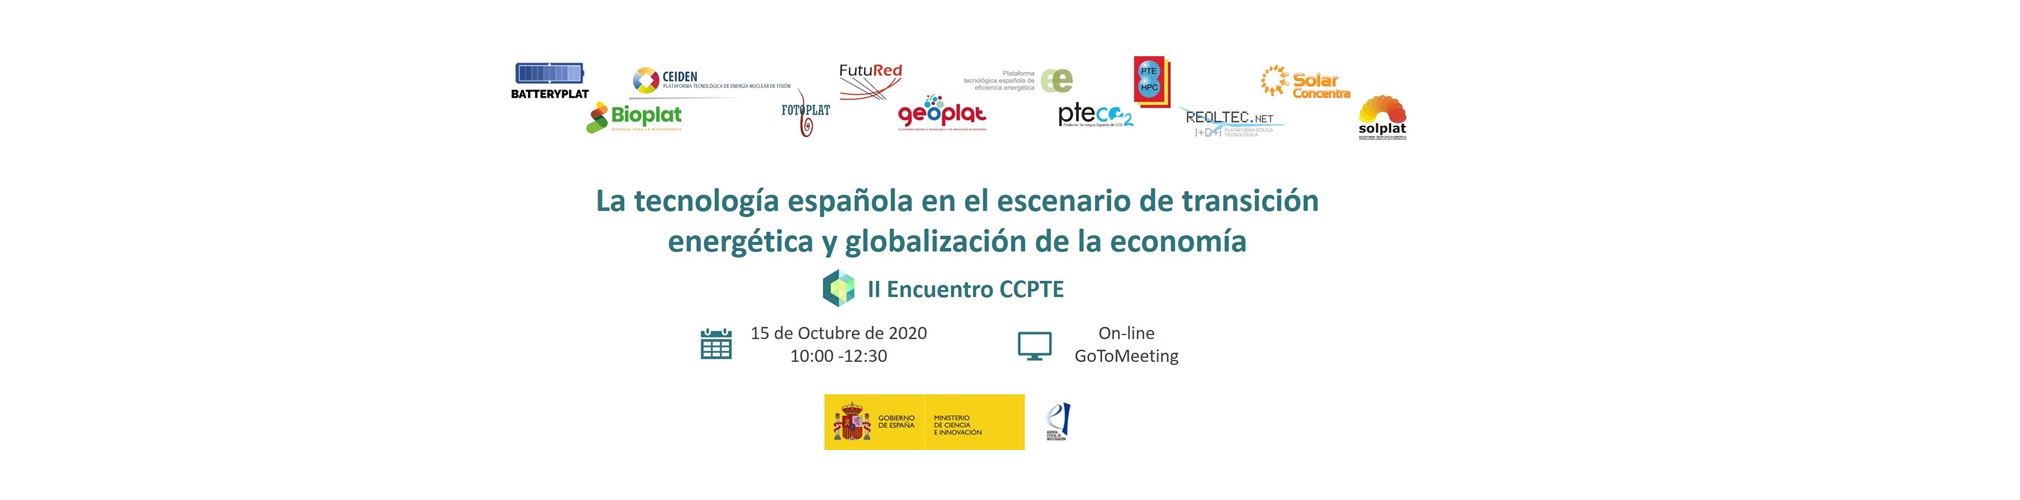 Save the Date - II Encuentro CCPTE